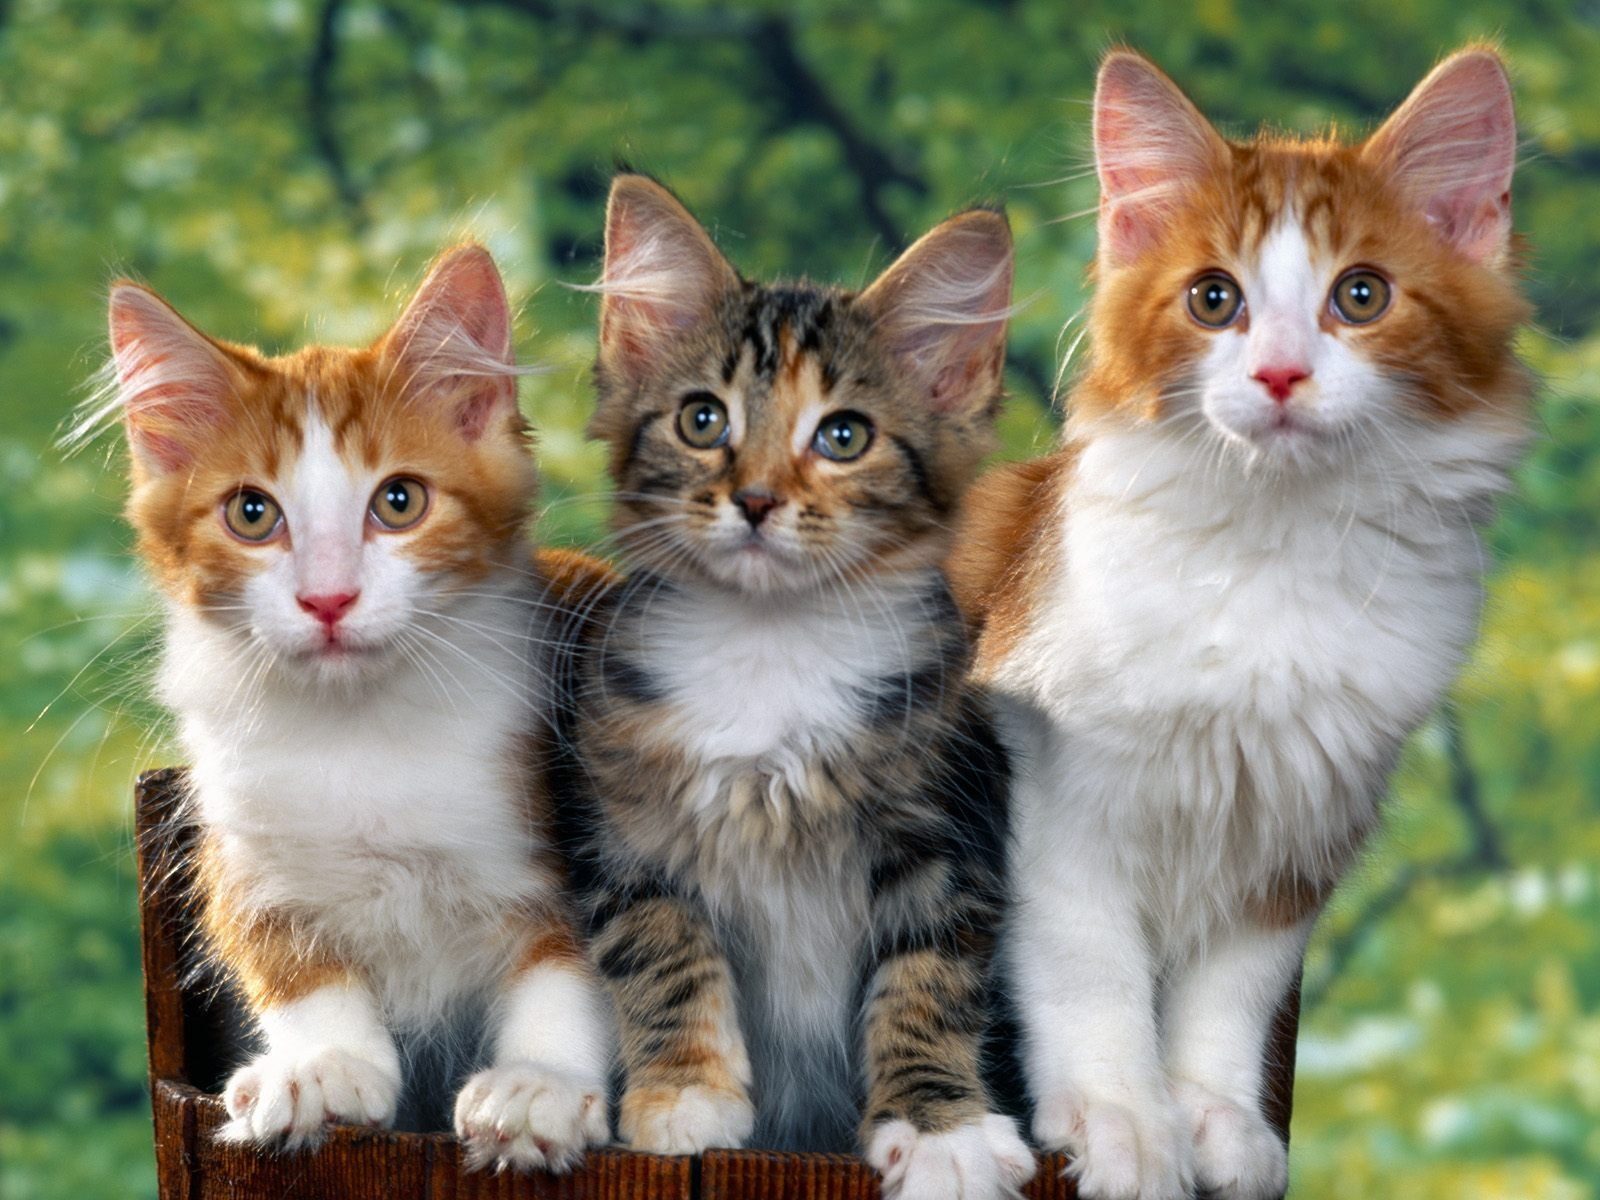 cats parrots and butterflies images Kittens HD wallpaper and